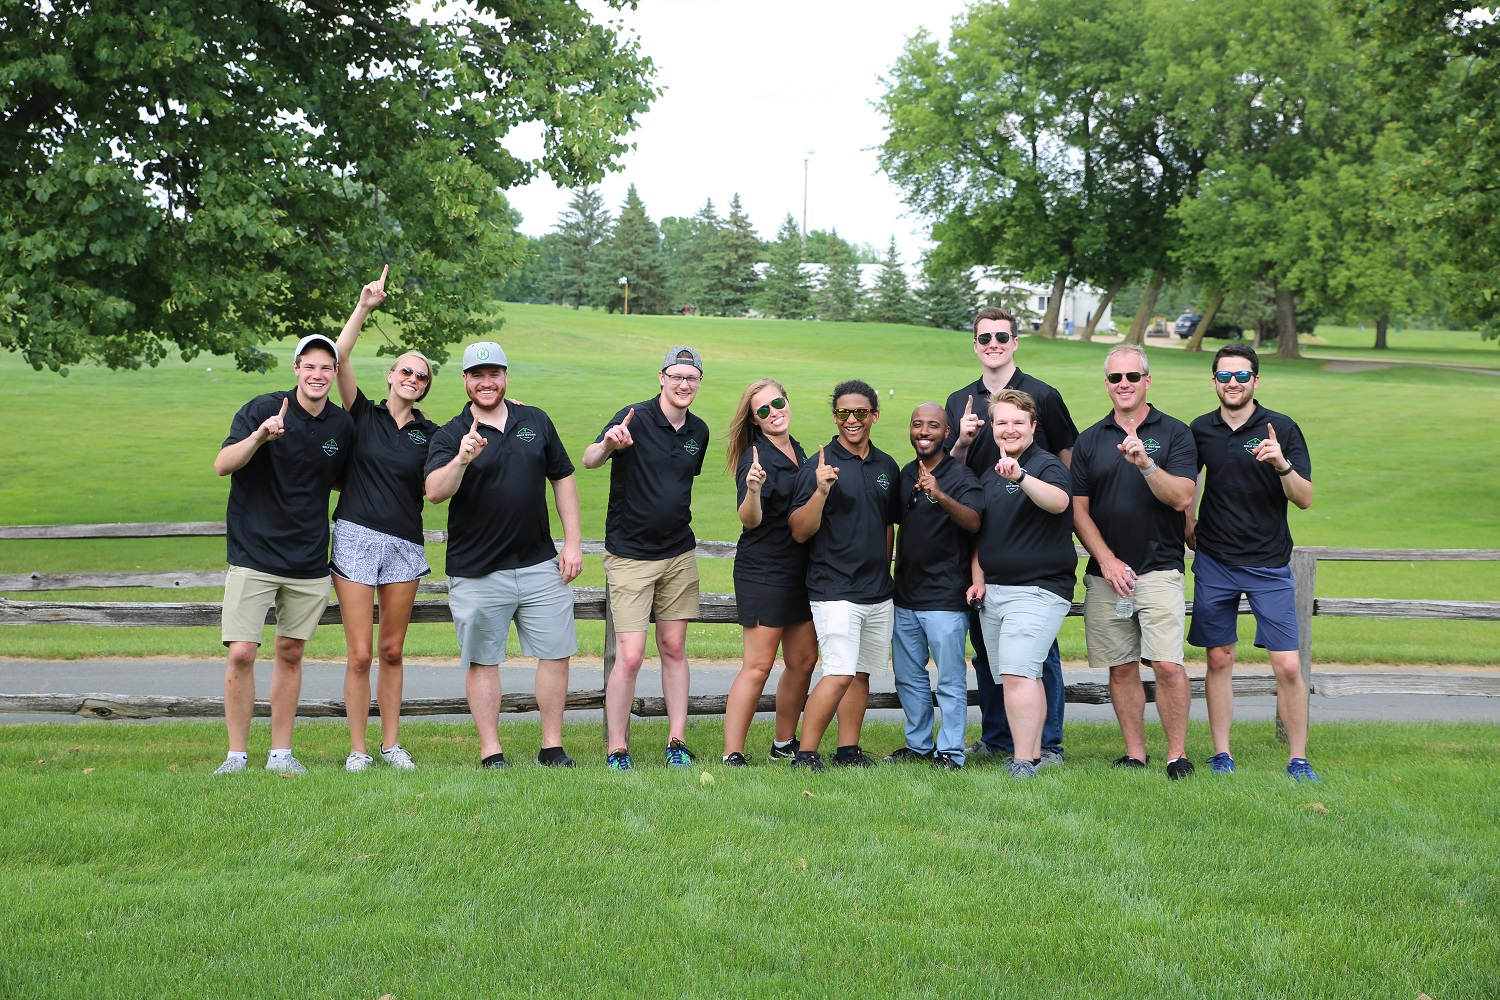 TECDP associates posing for a photo during a team event.